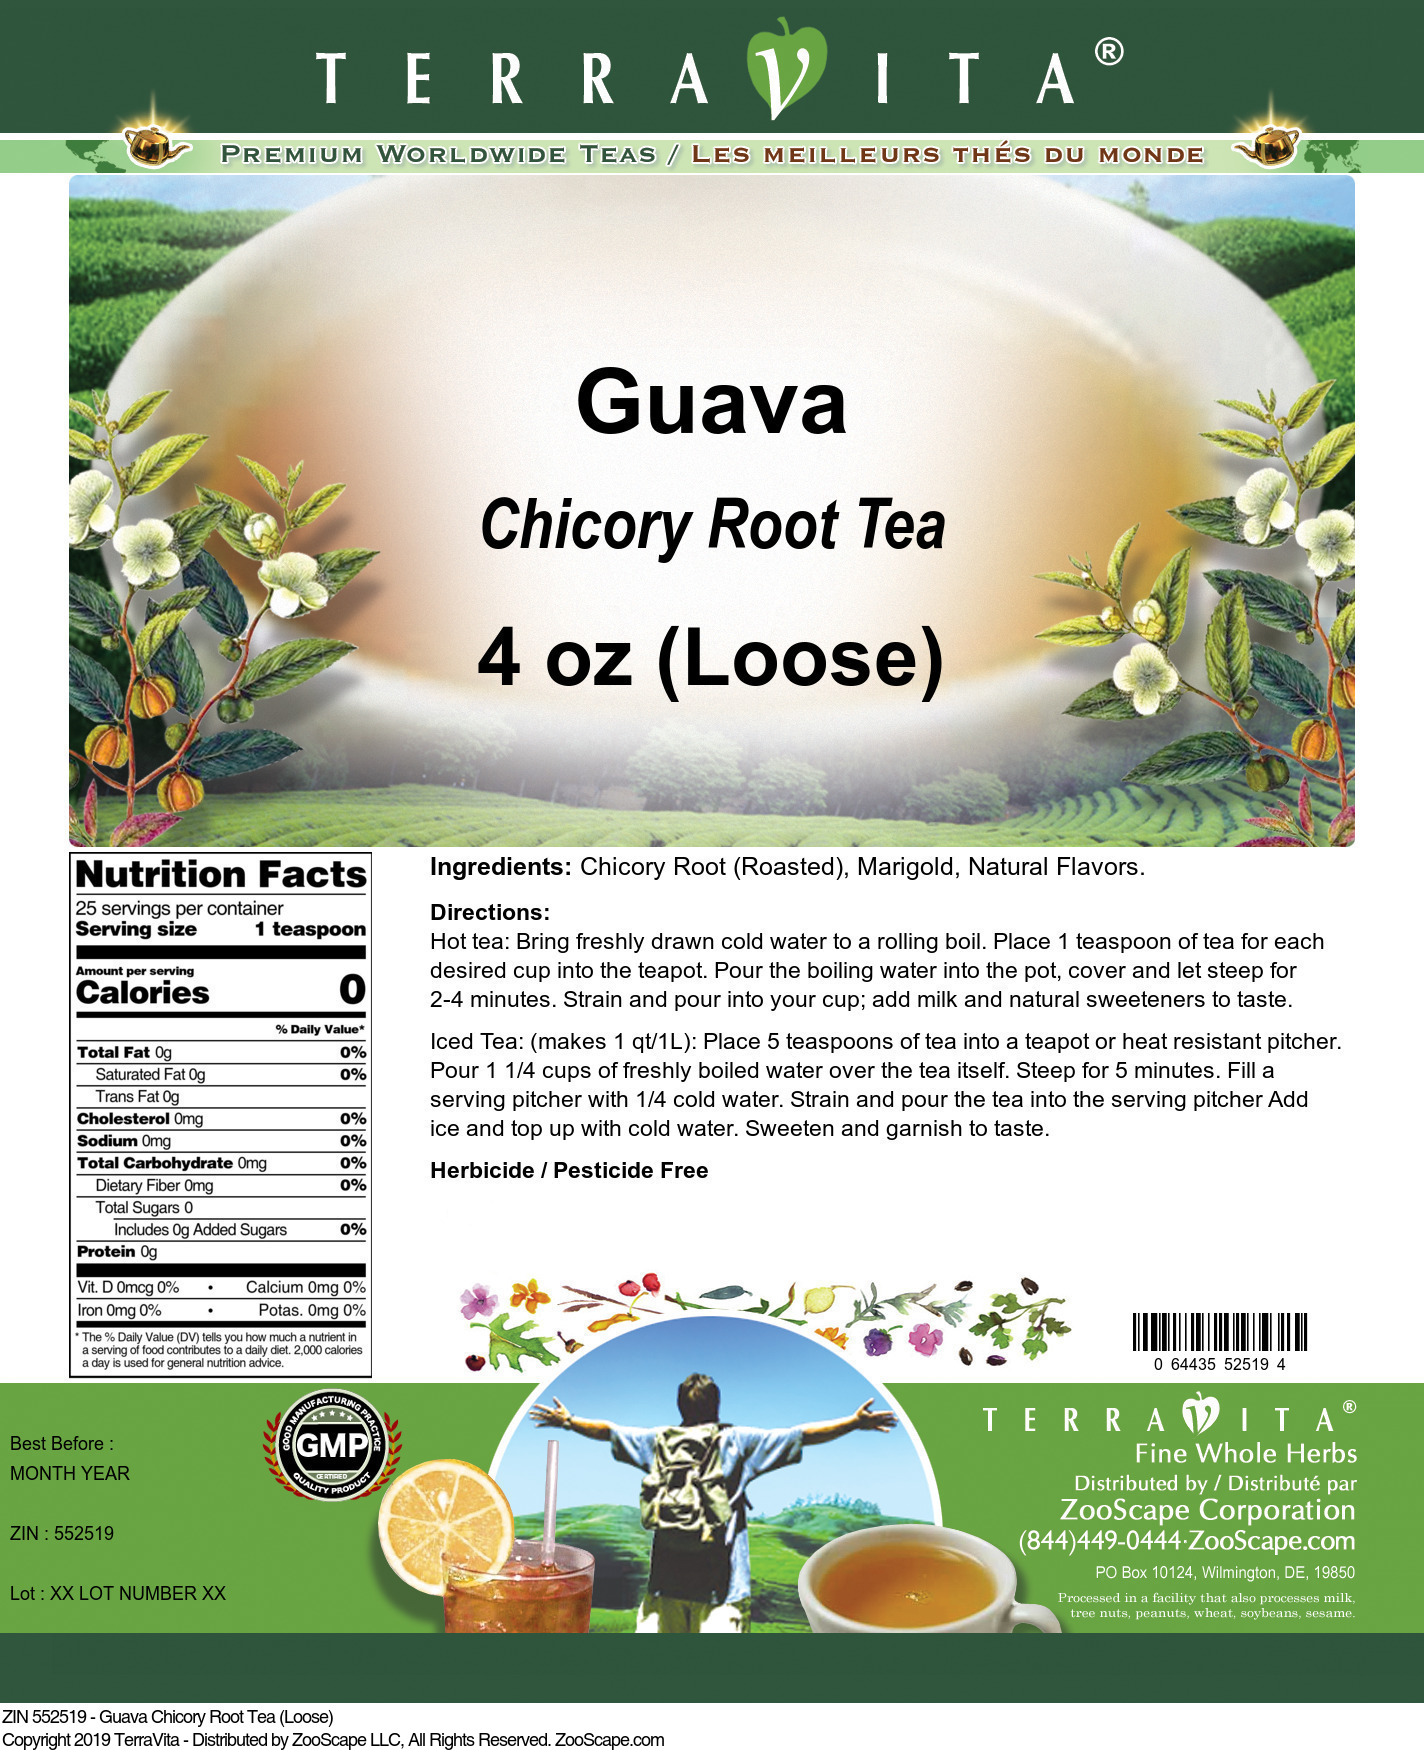 Guava Chicory Root